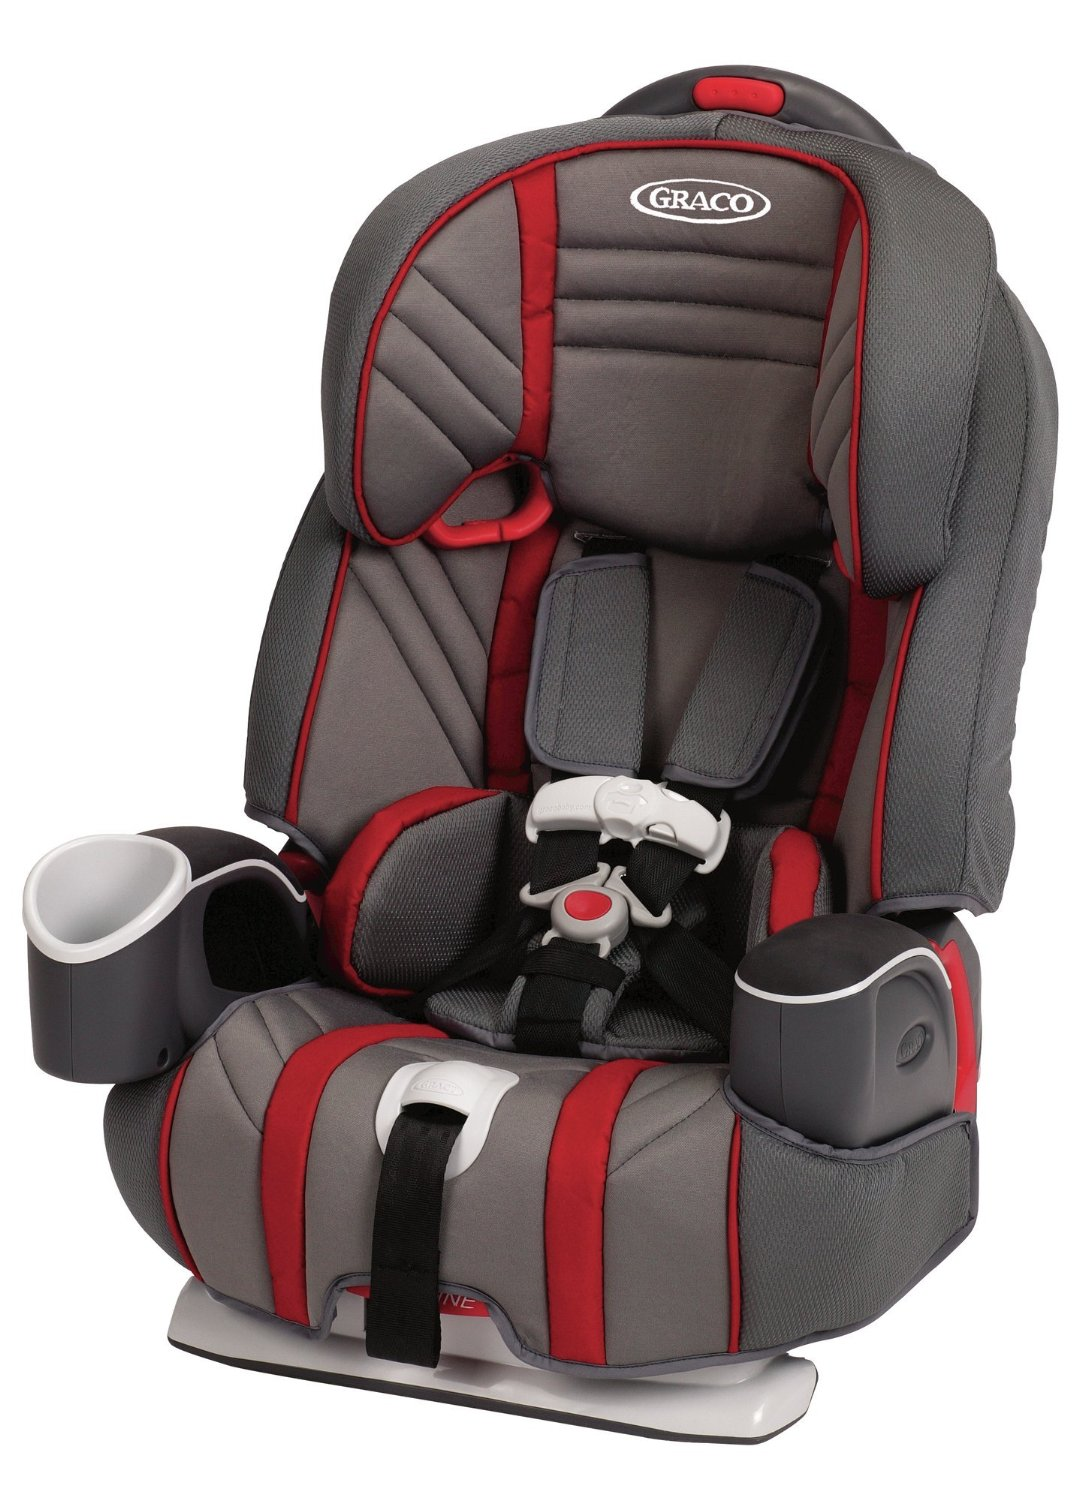 Today Only Graco Nautilus 3in1 Car Seat as low as 111